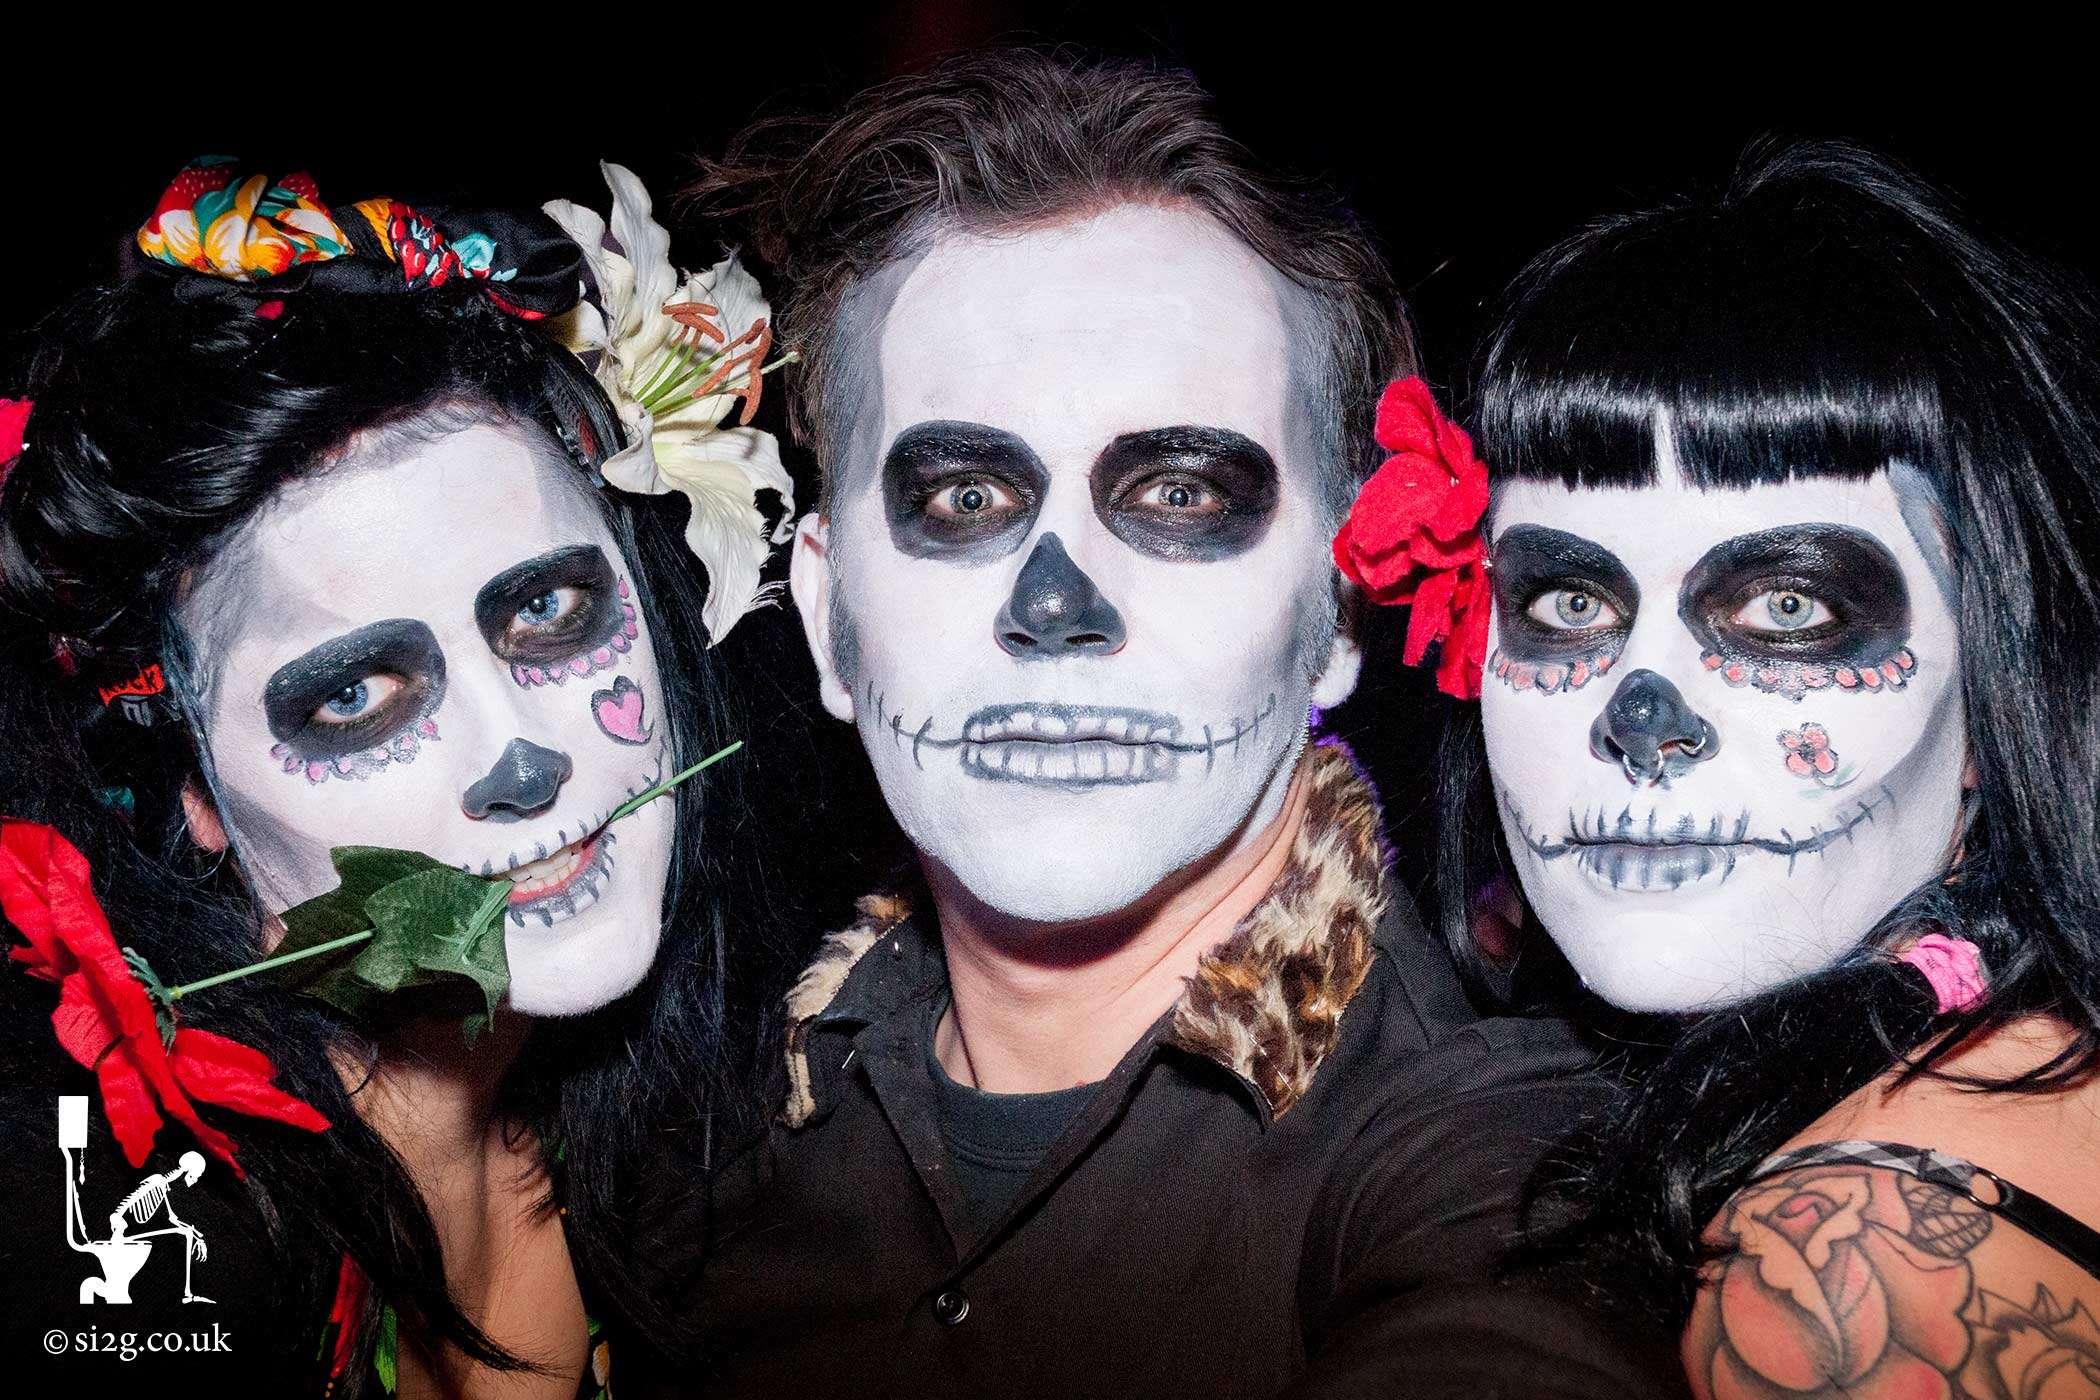 Los Dias De Los Muertos - Event photography for a one-off themed night for a large night club.  Party-goers were given free entry if attending in fancy dress.  All acts that evening were themed as part of the Mexican celebration of remembrance.